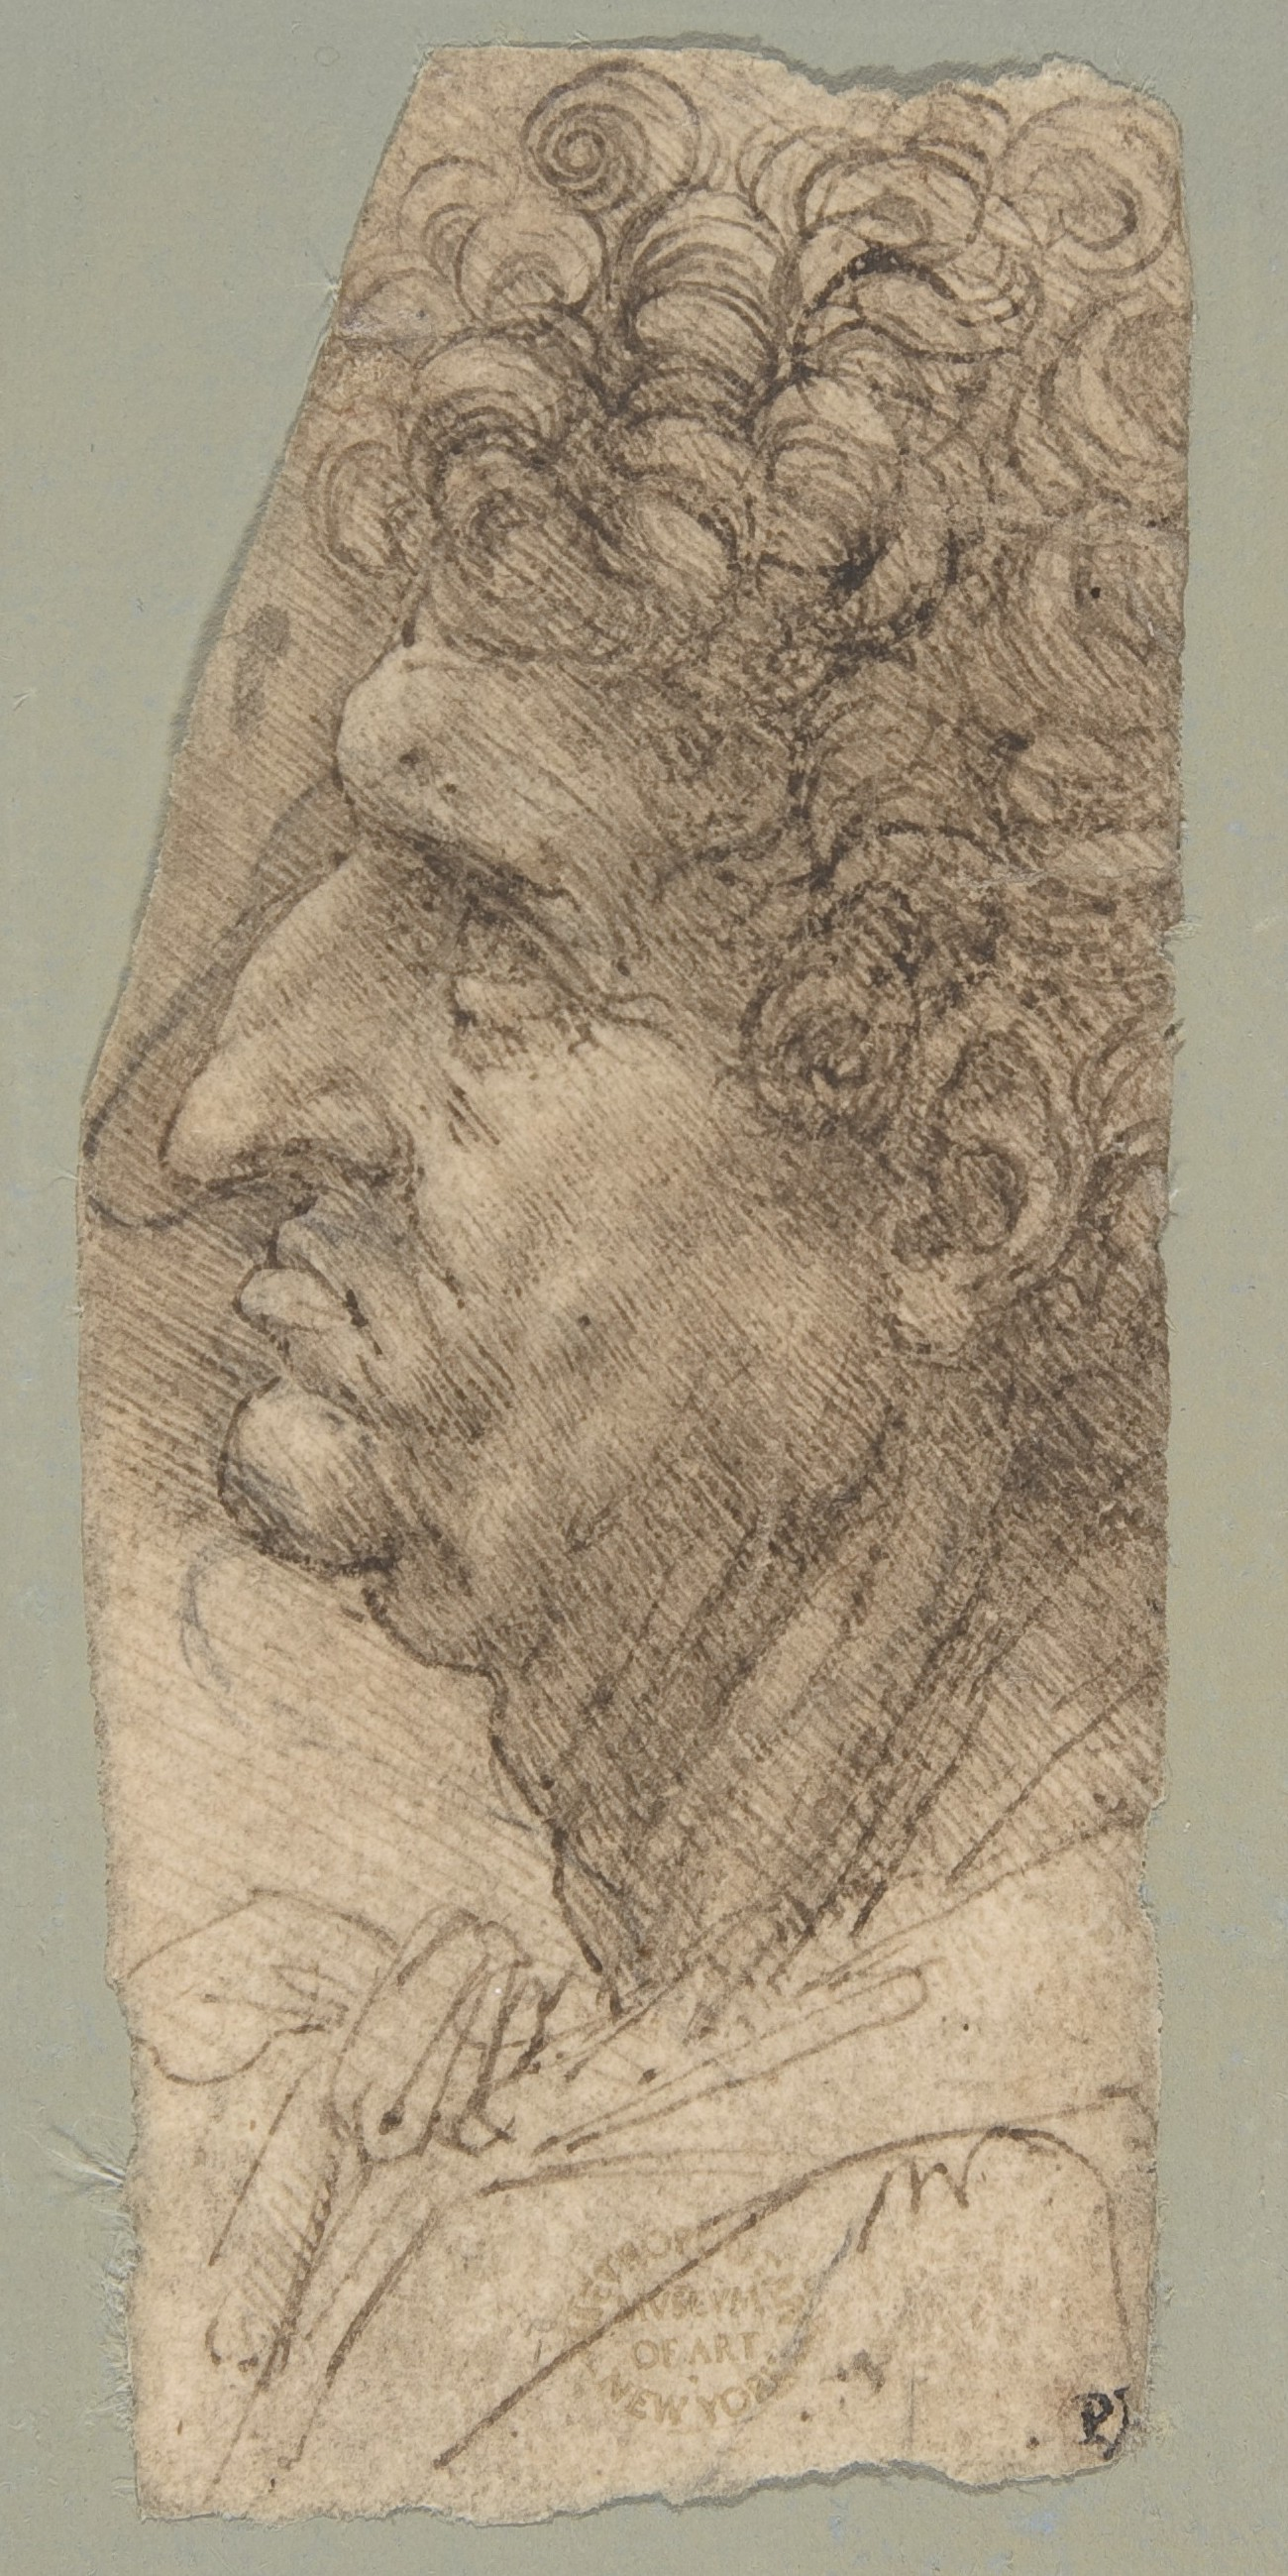 Drawing by von Leonardo da Vinci